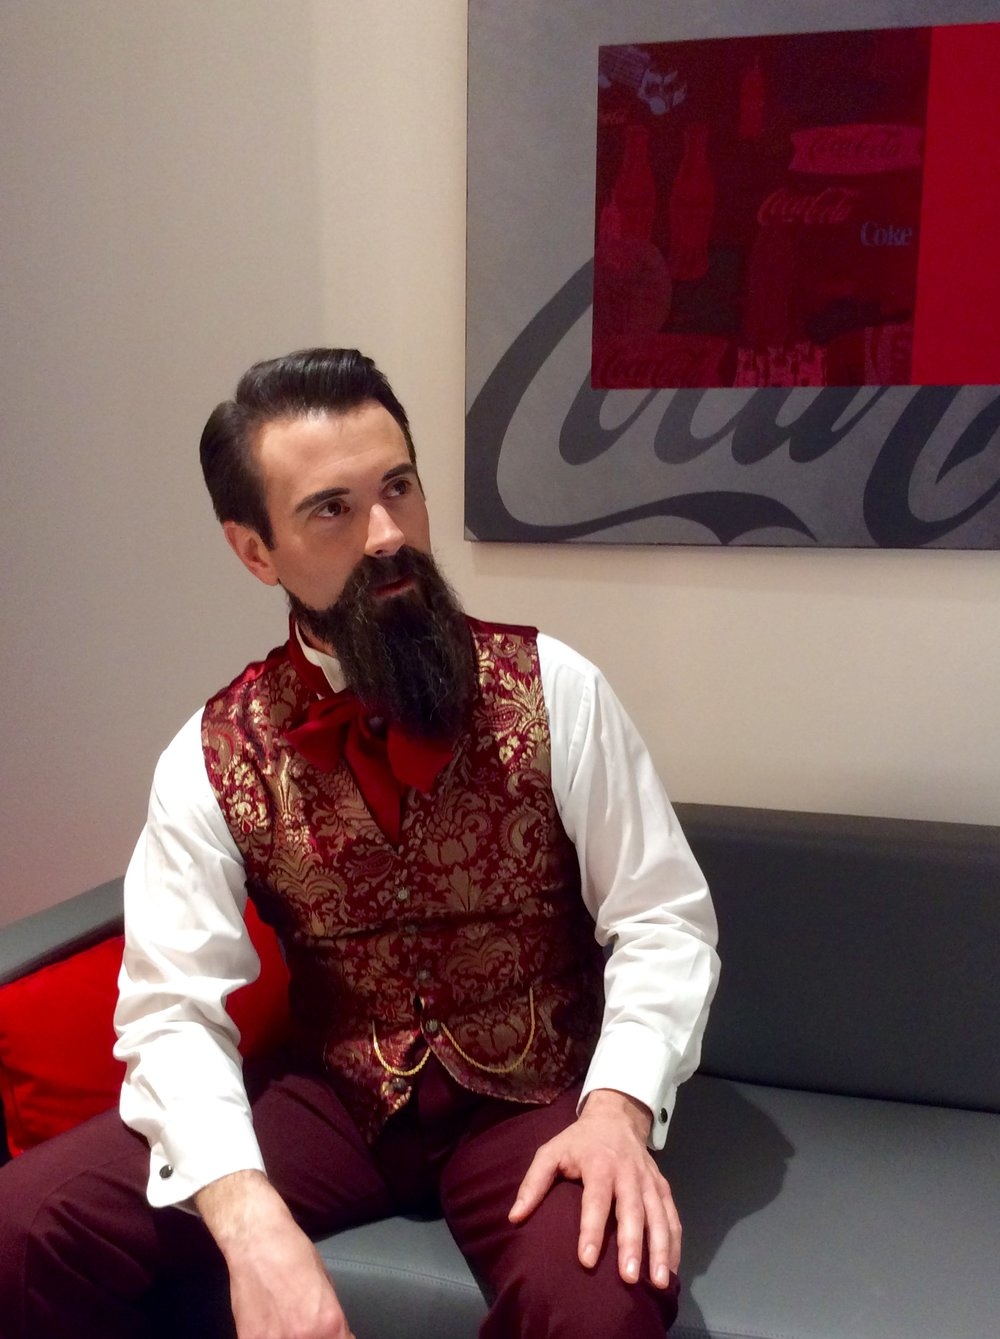 Specialty costume for Doc Pemberton Impersonator. Coca-Cola Townhall Videos, 2016.